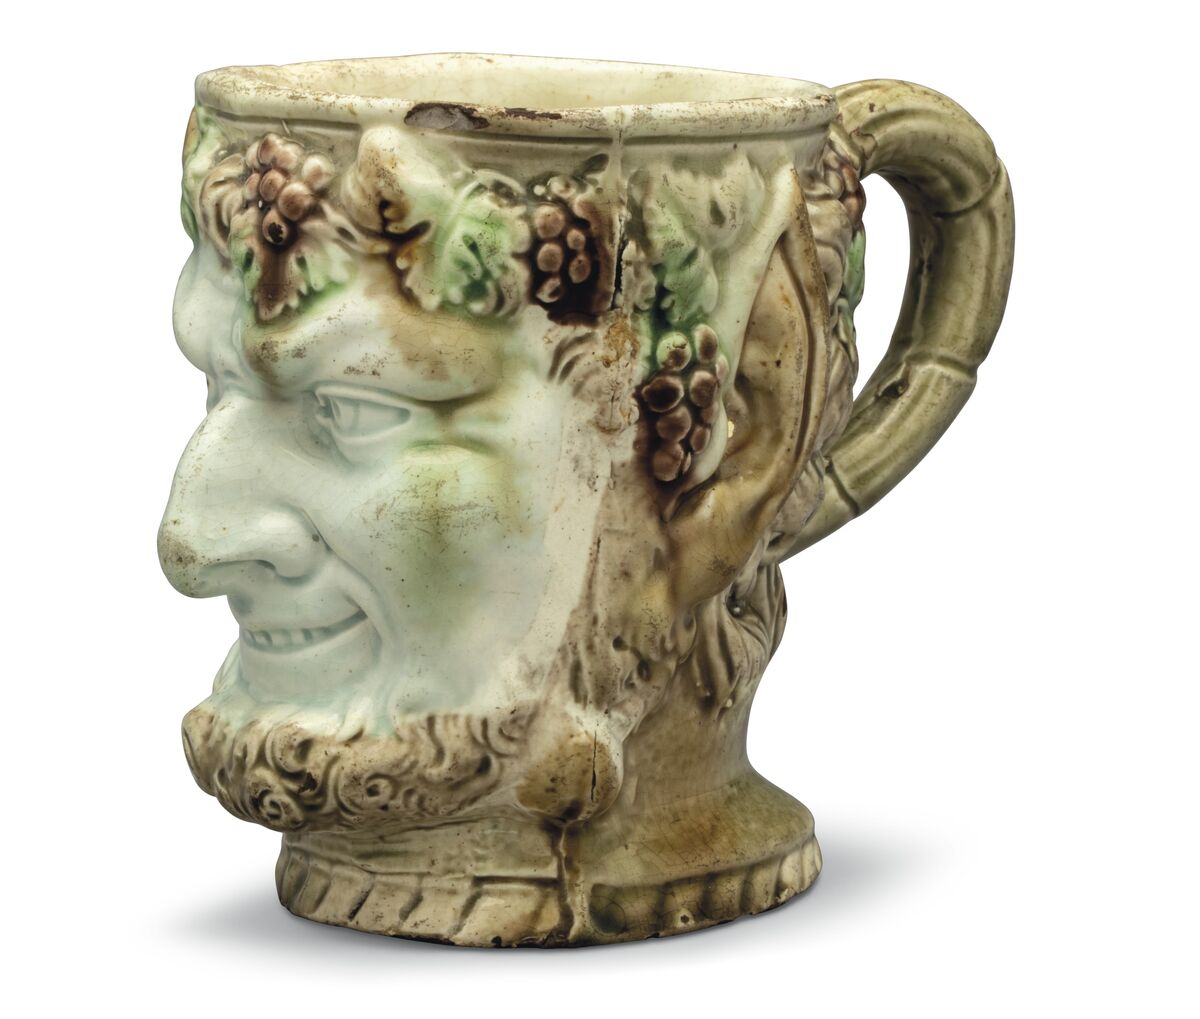 A Staffordshire creamware satyr-mask mug, c. 1770. Courtesy of Christie's.